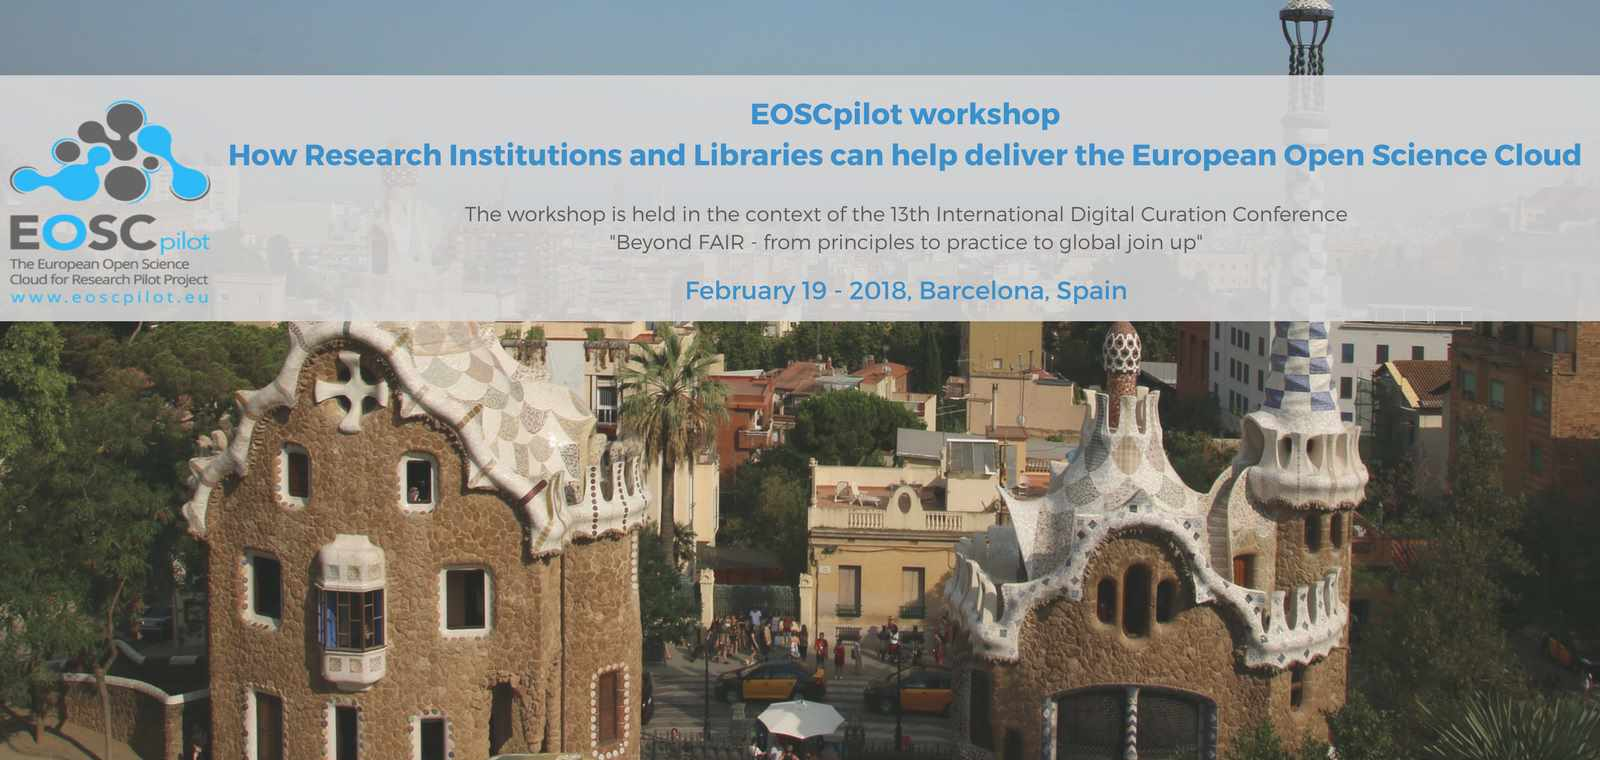 How Research Institutions and Libraries can help deliver the European Open Science Cloud